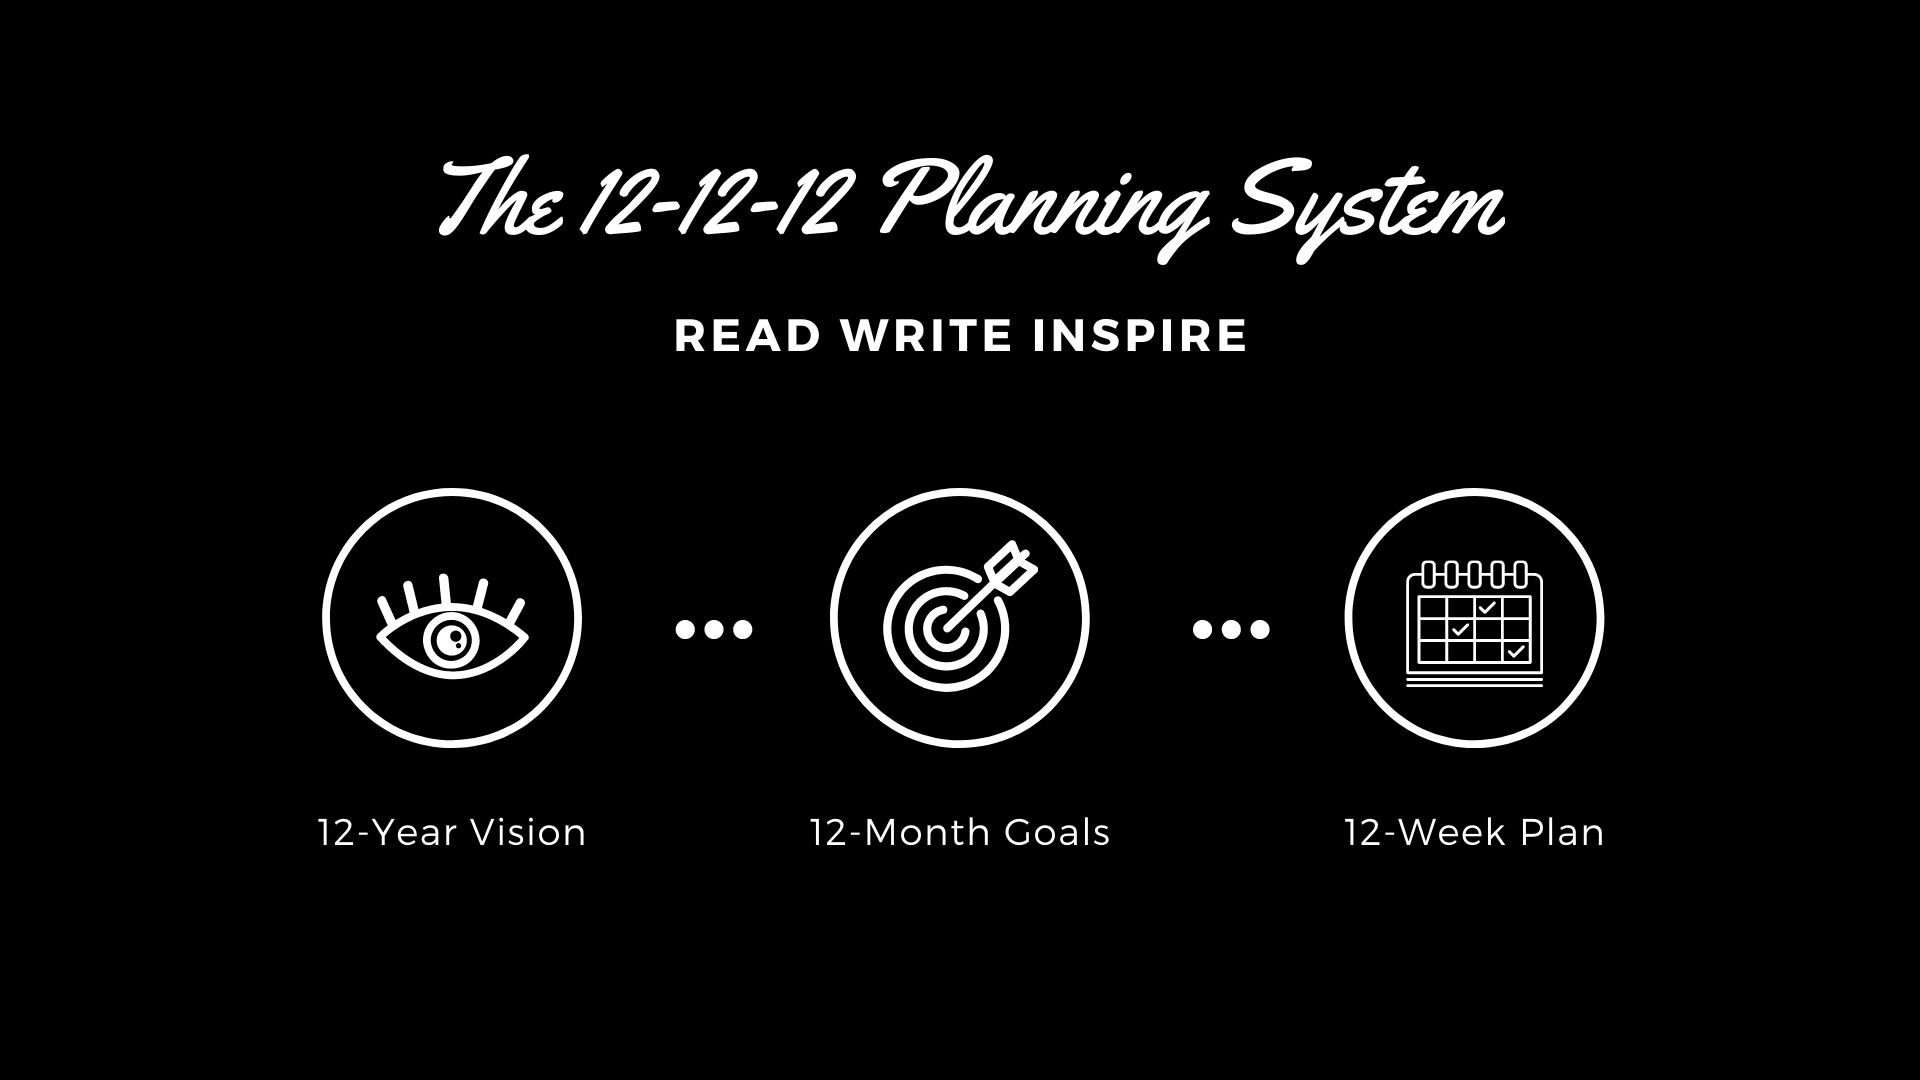 The 12-12-12 Planning System